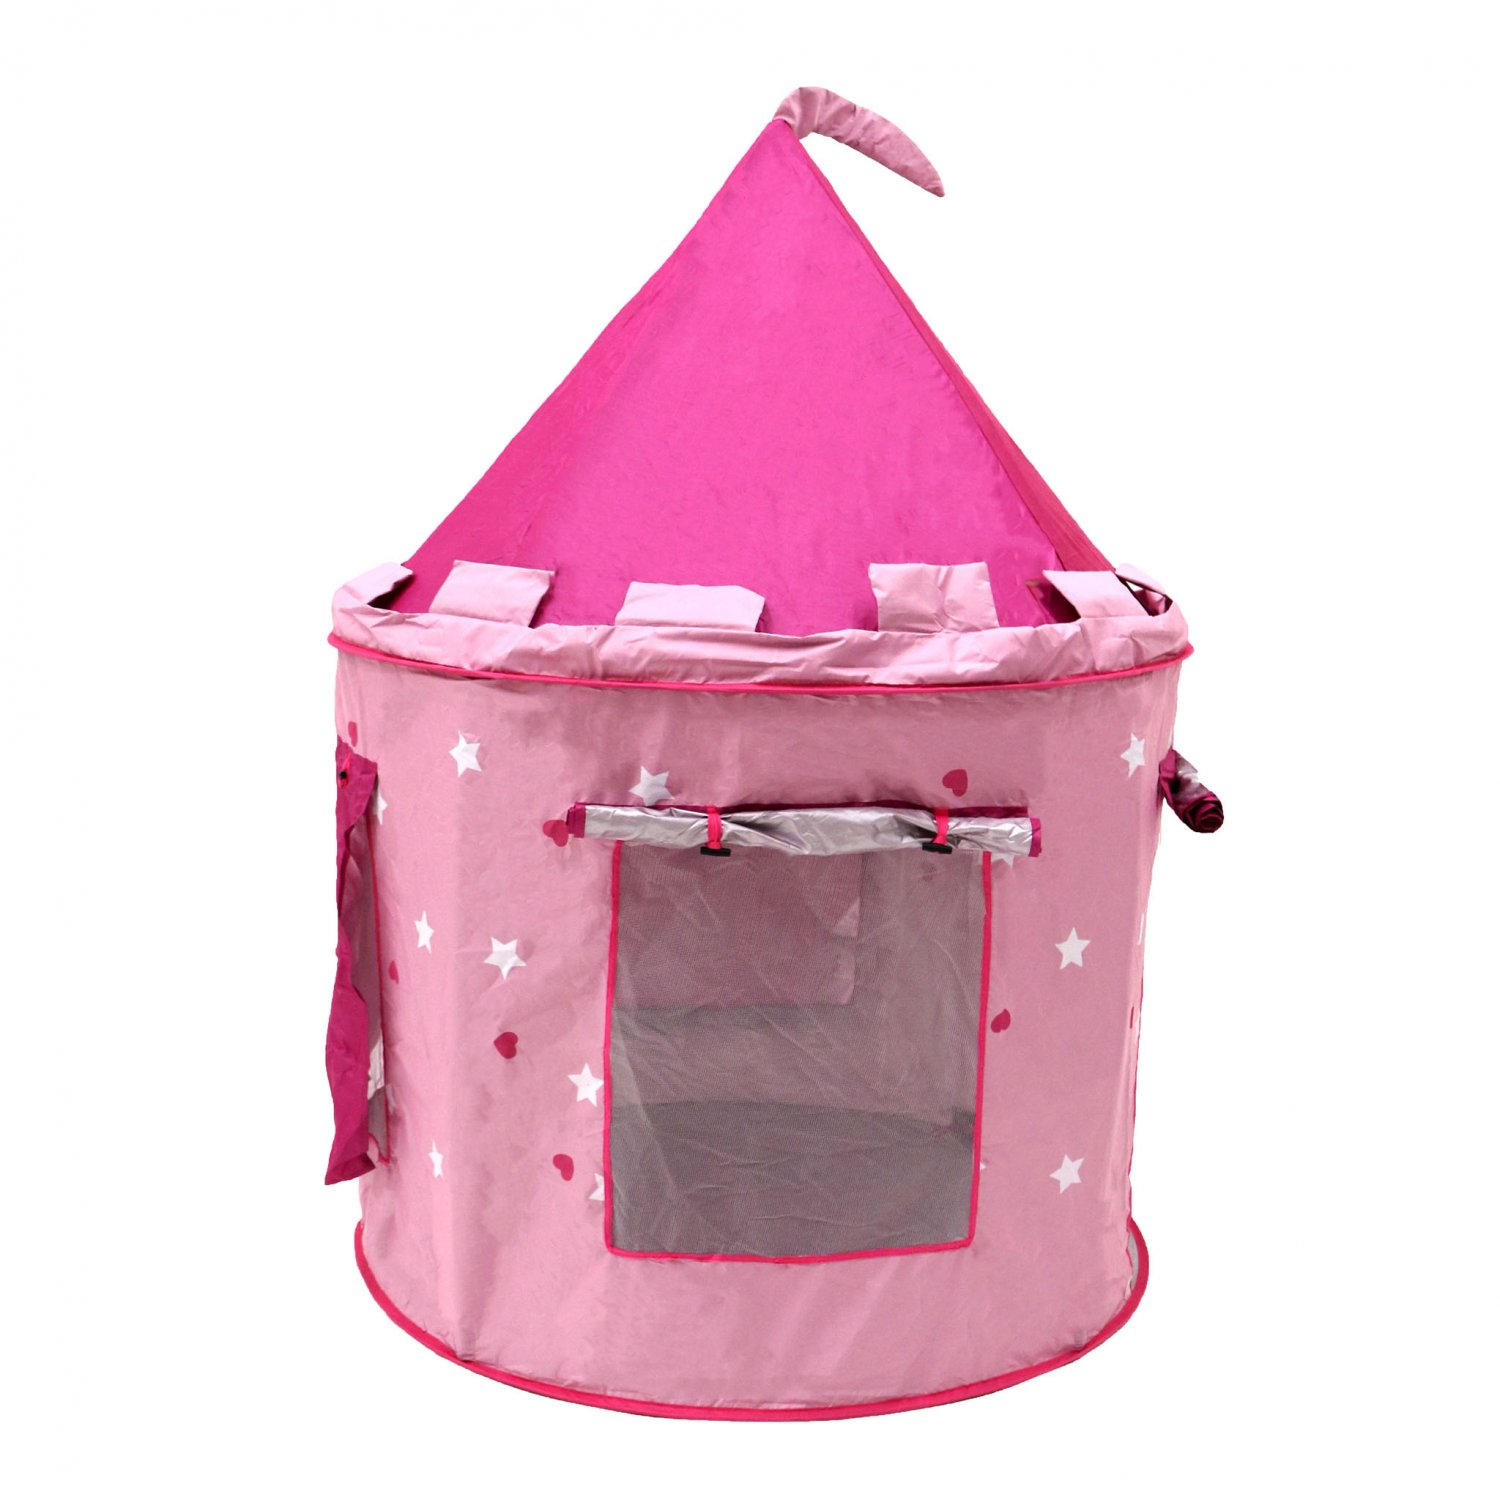 ... Childrens Kids Pink Castle Pop Up Play Tent Fairy Princess ...  sc 1 st  Oypla & Childrens Kids Pink Castle Pop Up Play Tent Fairy Princess ...